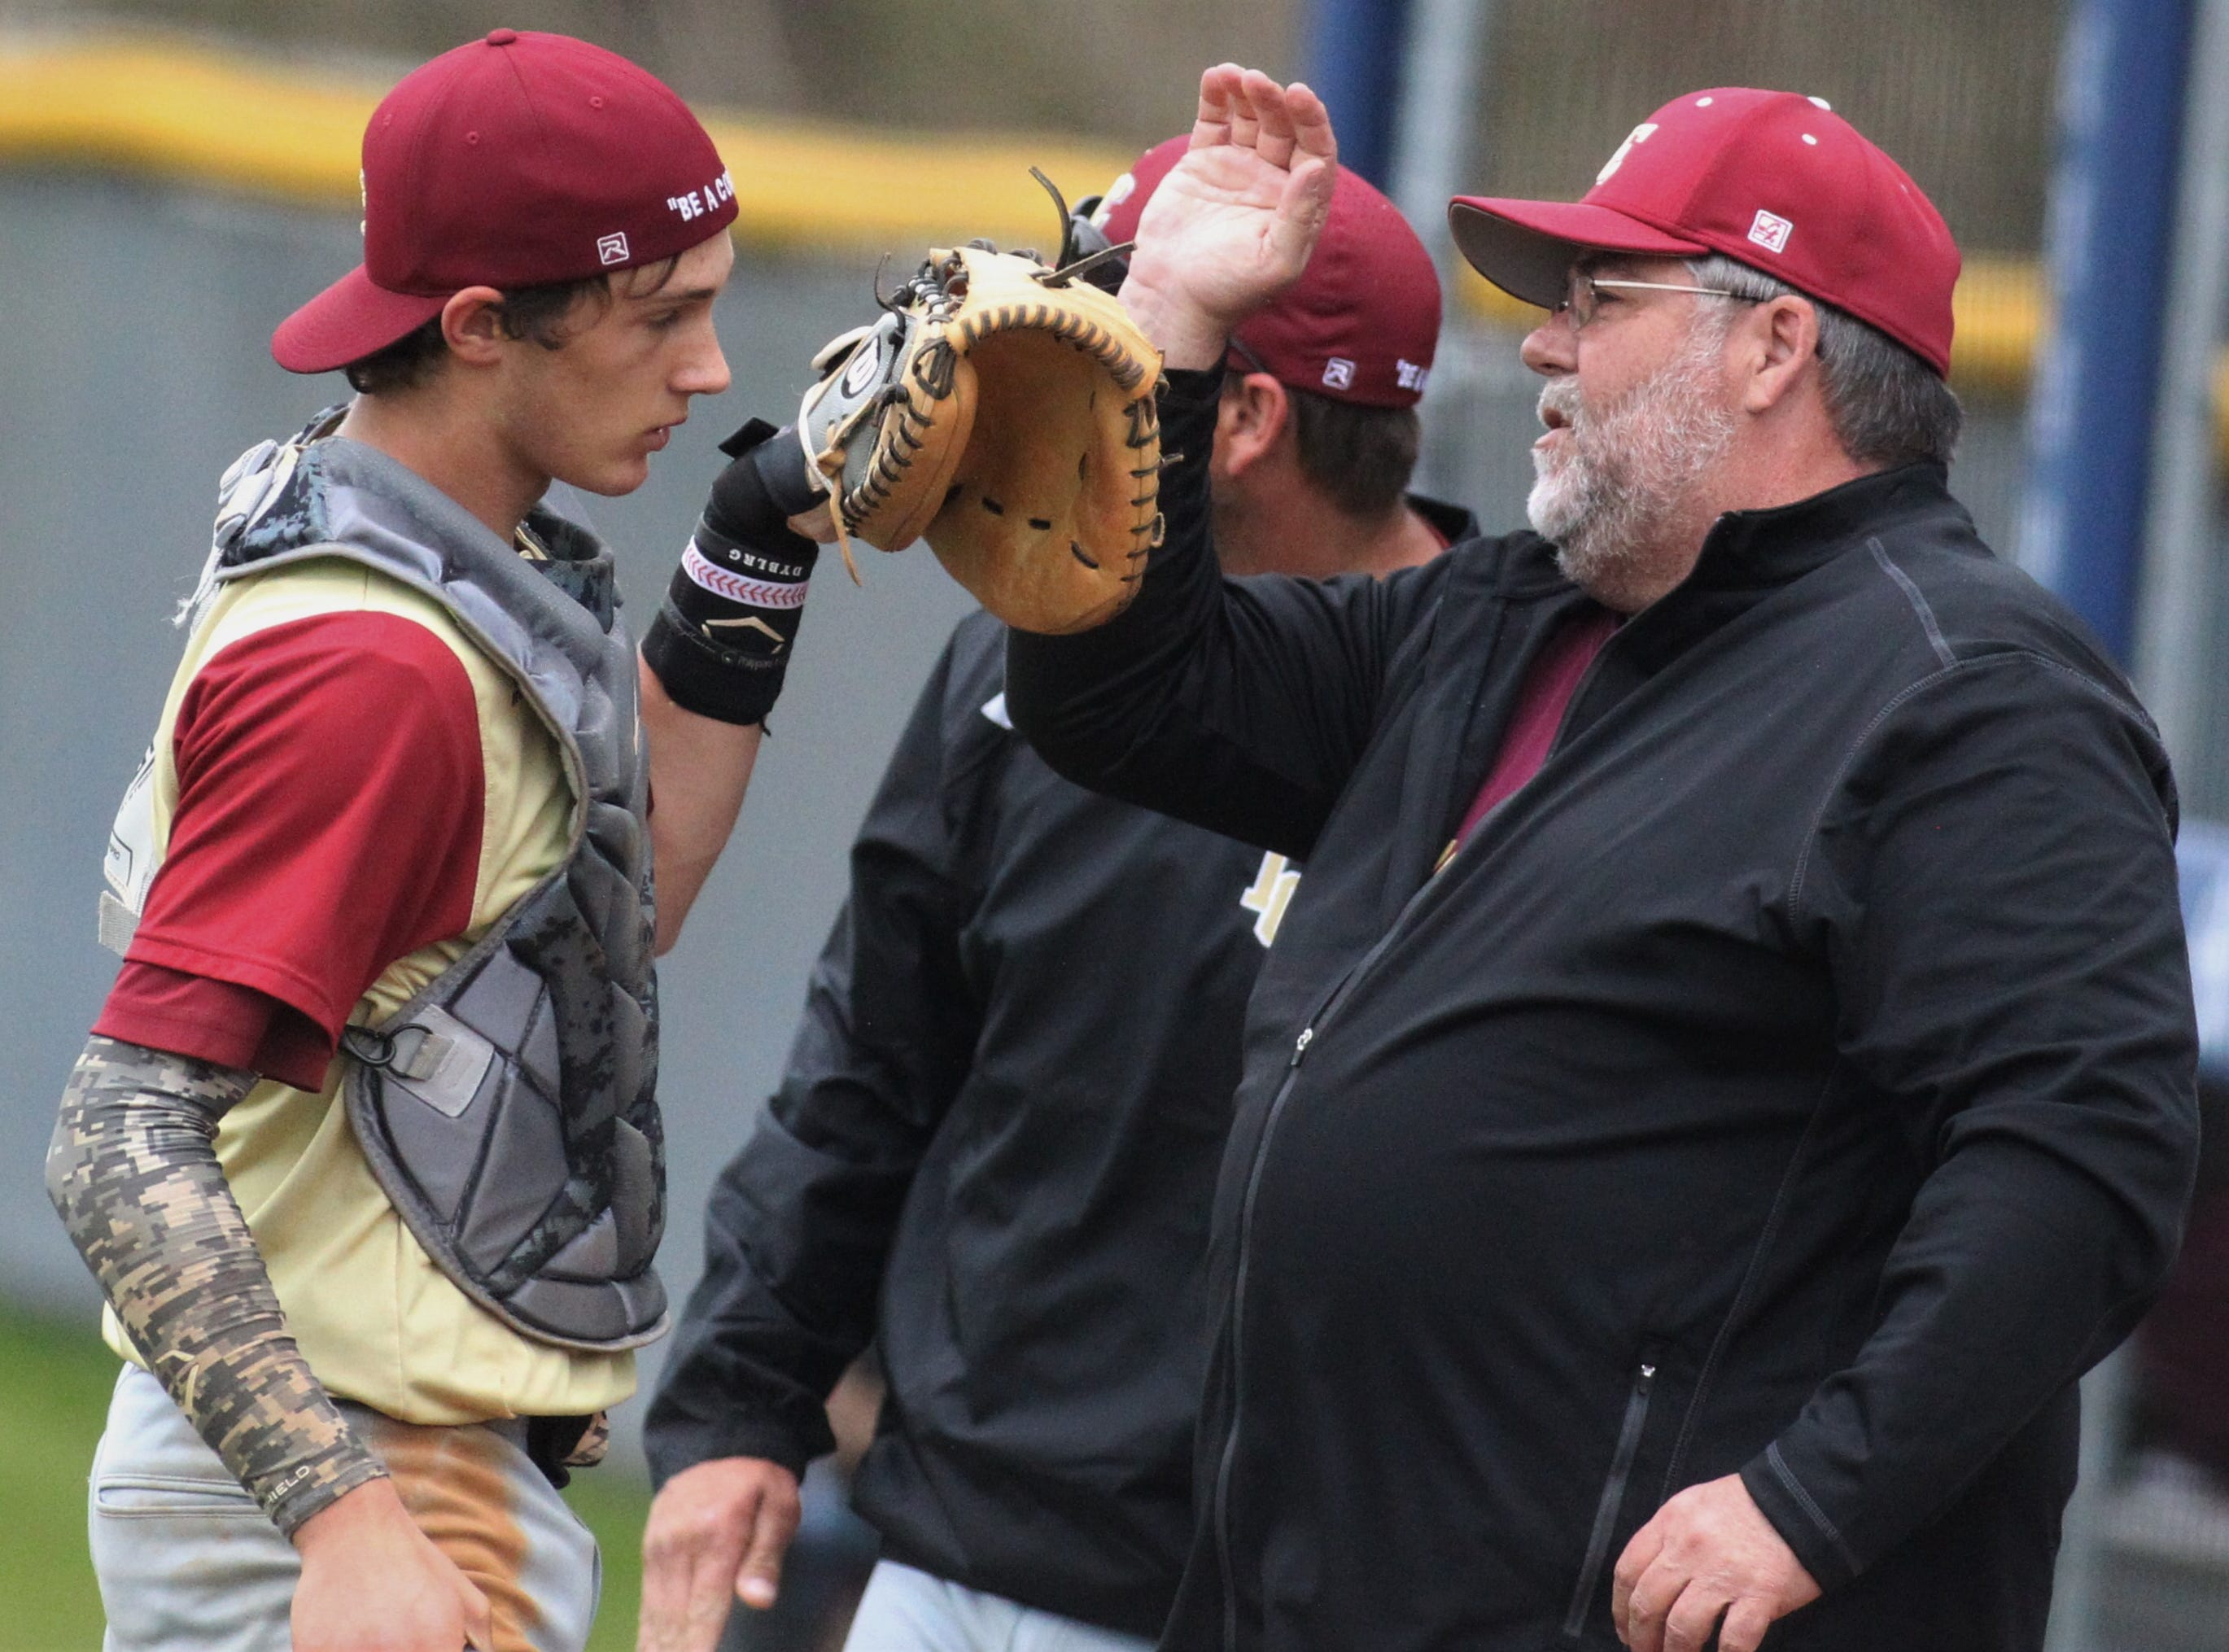 Liberty County catcher Austin Waller gets congratulated as Liberty County's baseball team went on the road to beat Maclay 8-2 on Saturday, March 16, 2019. The Bulldogs played their first game following their head coach Corey Crum's tragic death six days ago.